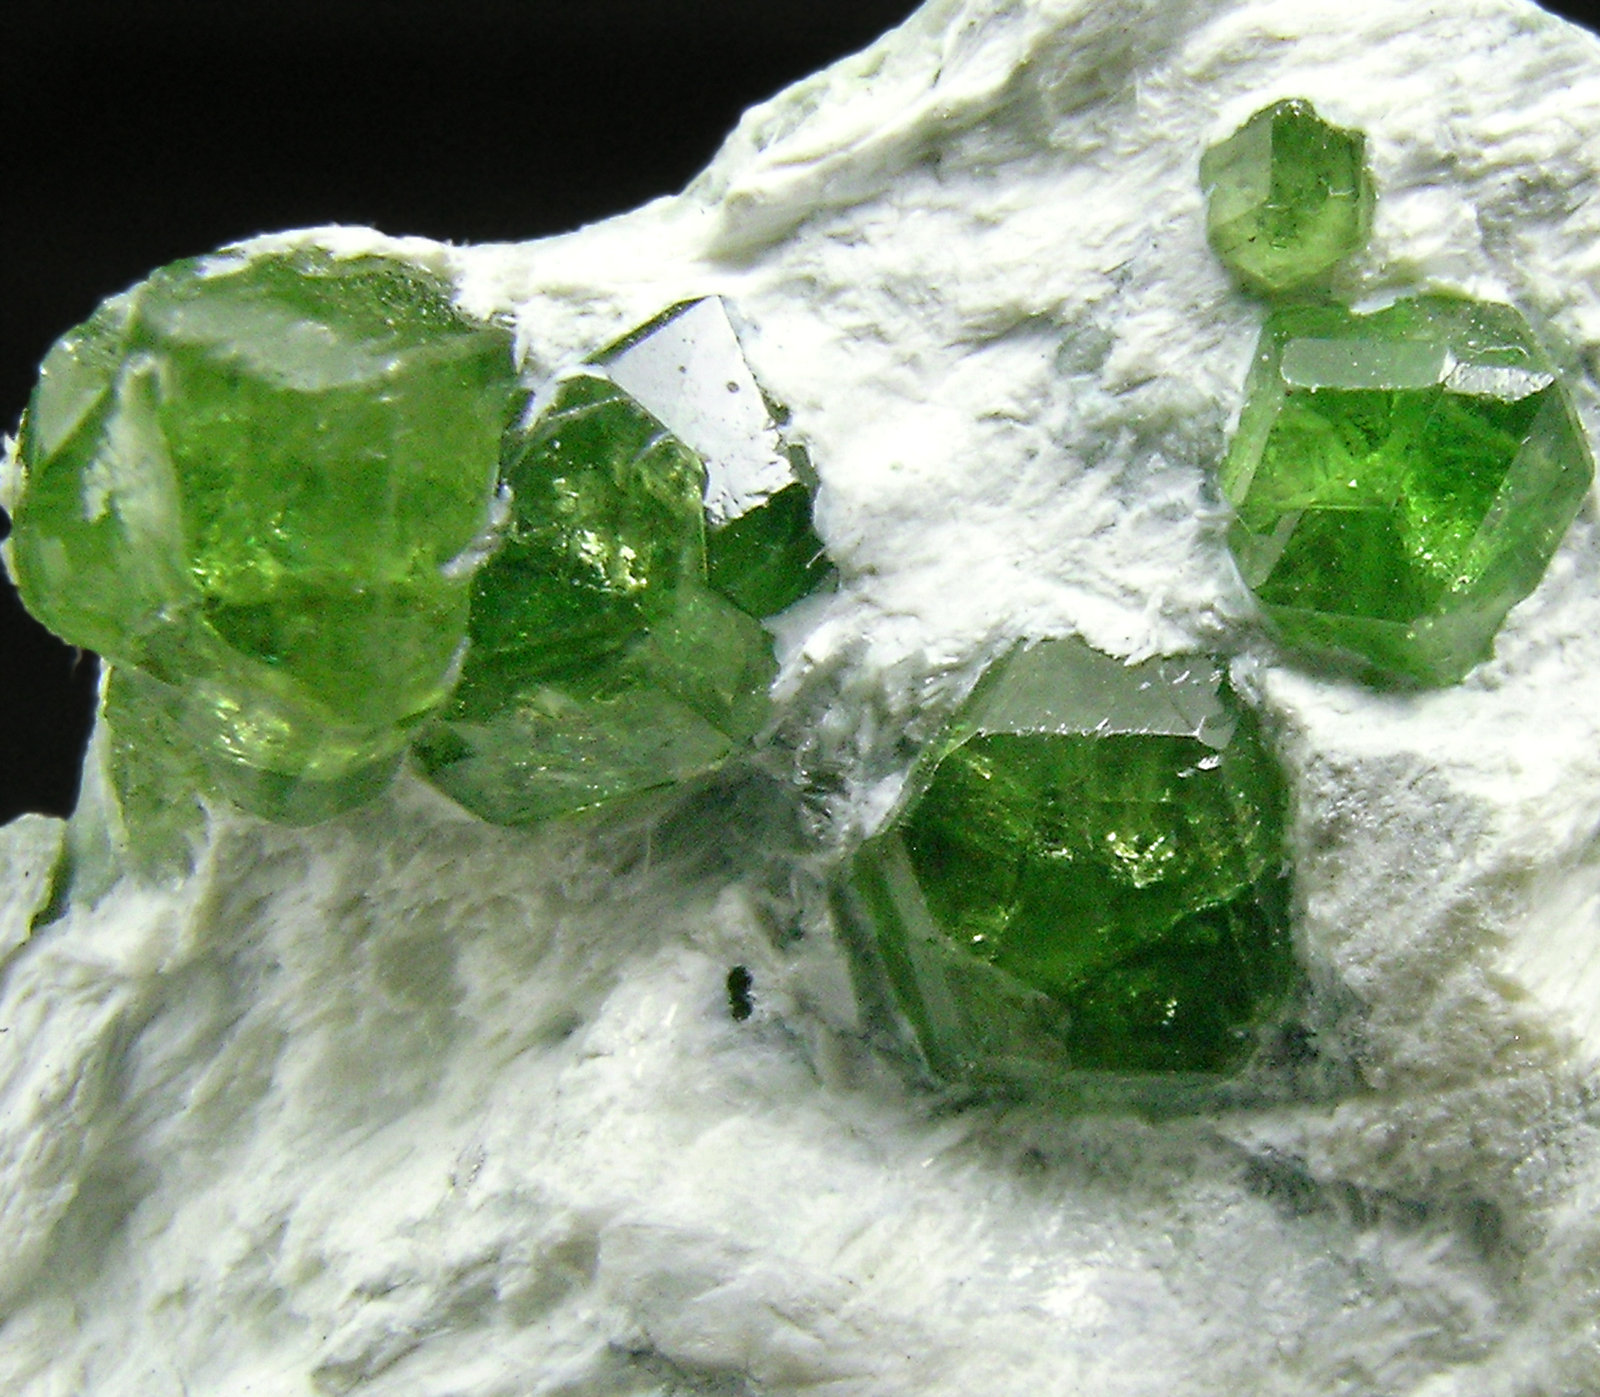 specimens/s_imagesQ0/Andradite_Demantoid-ET46Q0d.jpg